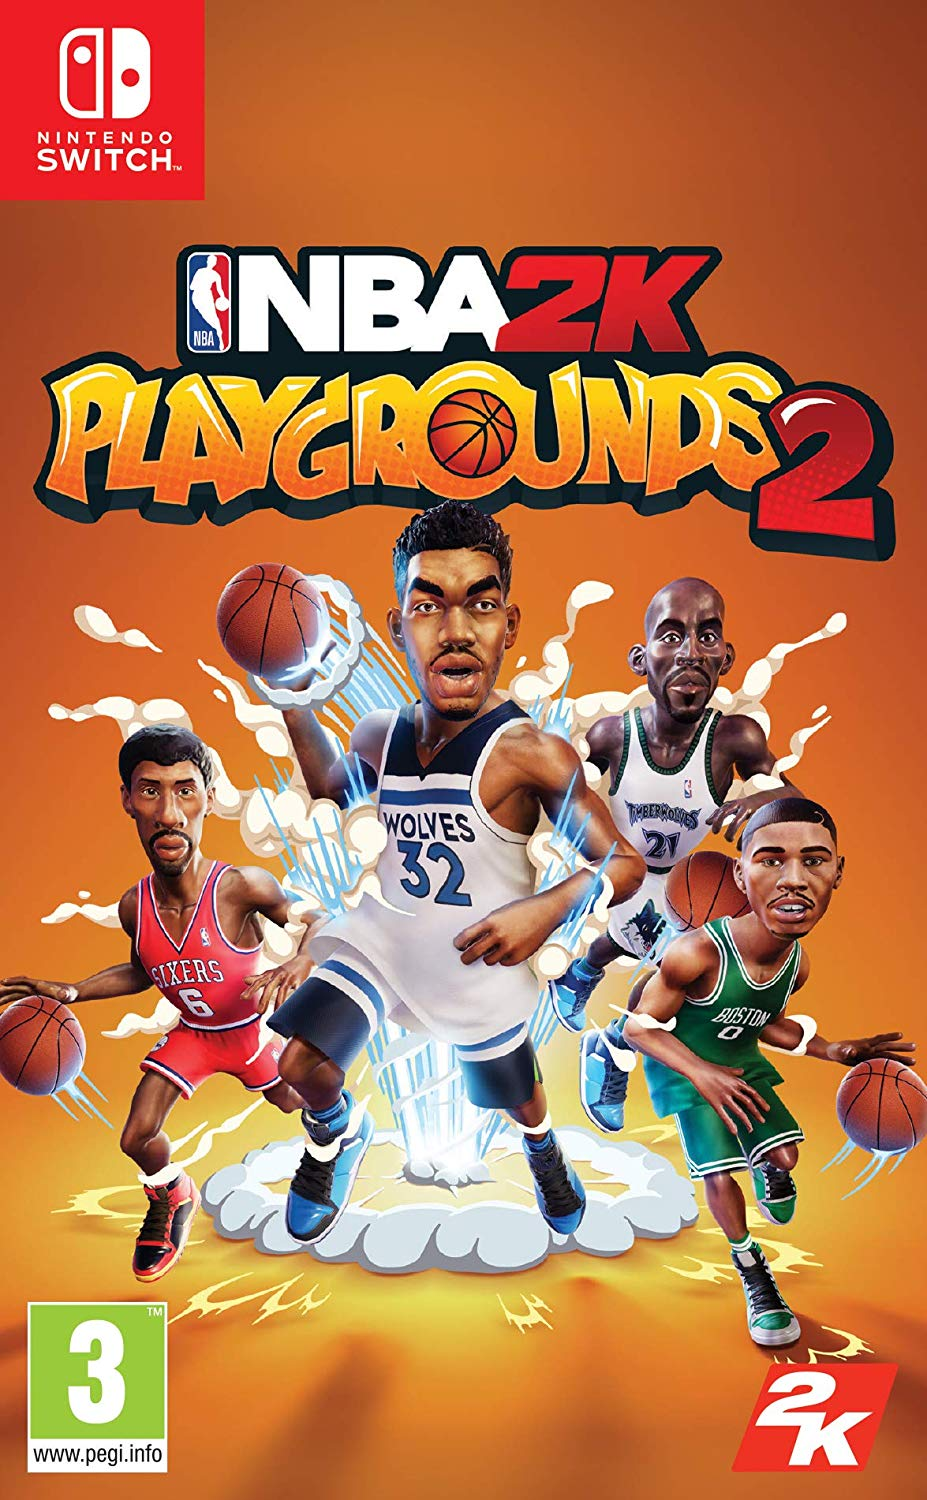 NBA 2K Playgrounds 2 Nintendo Switch, Nintendo Switch, DVDMEGASTORE, DVDMEGASTORE